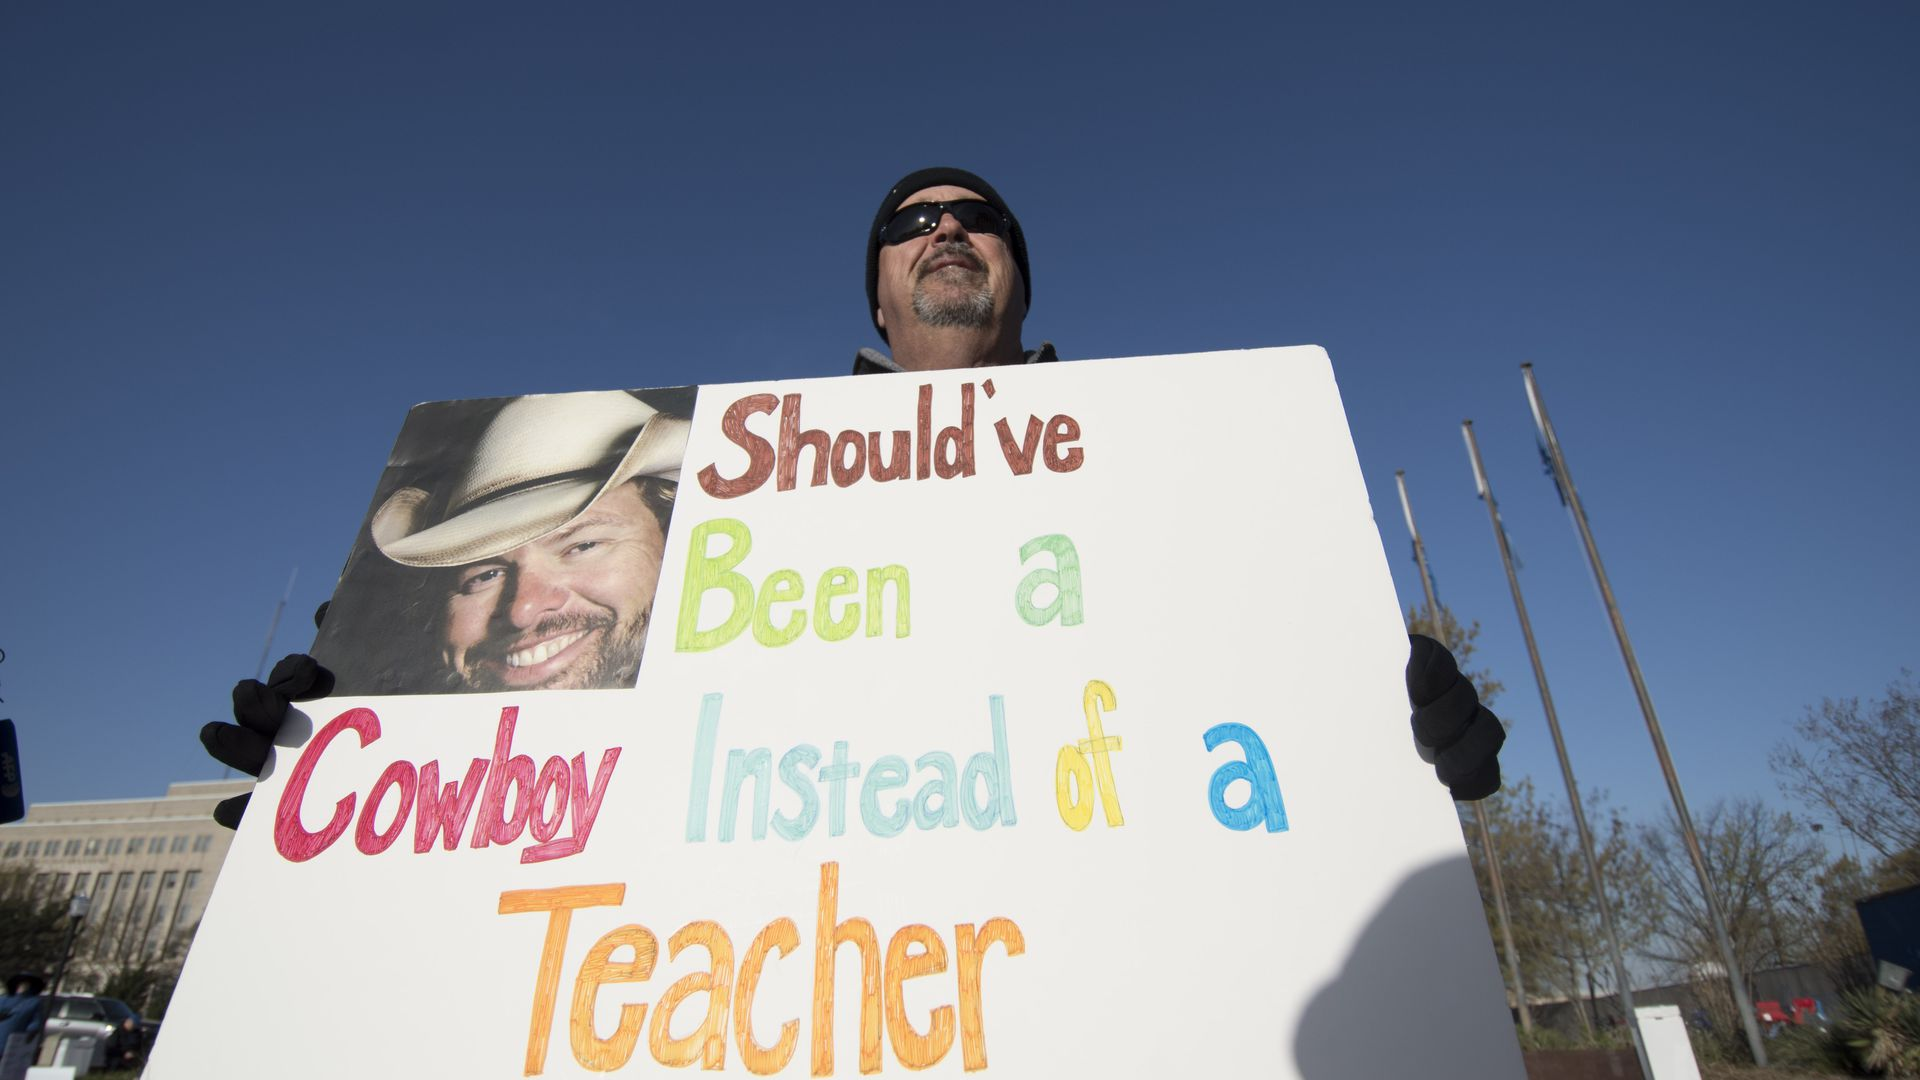 A teacher protesting